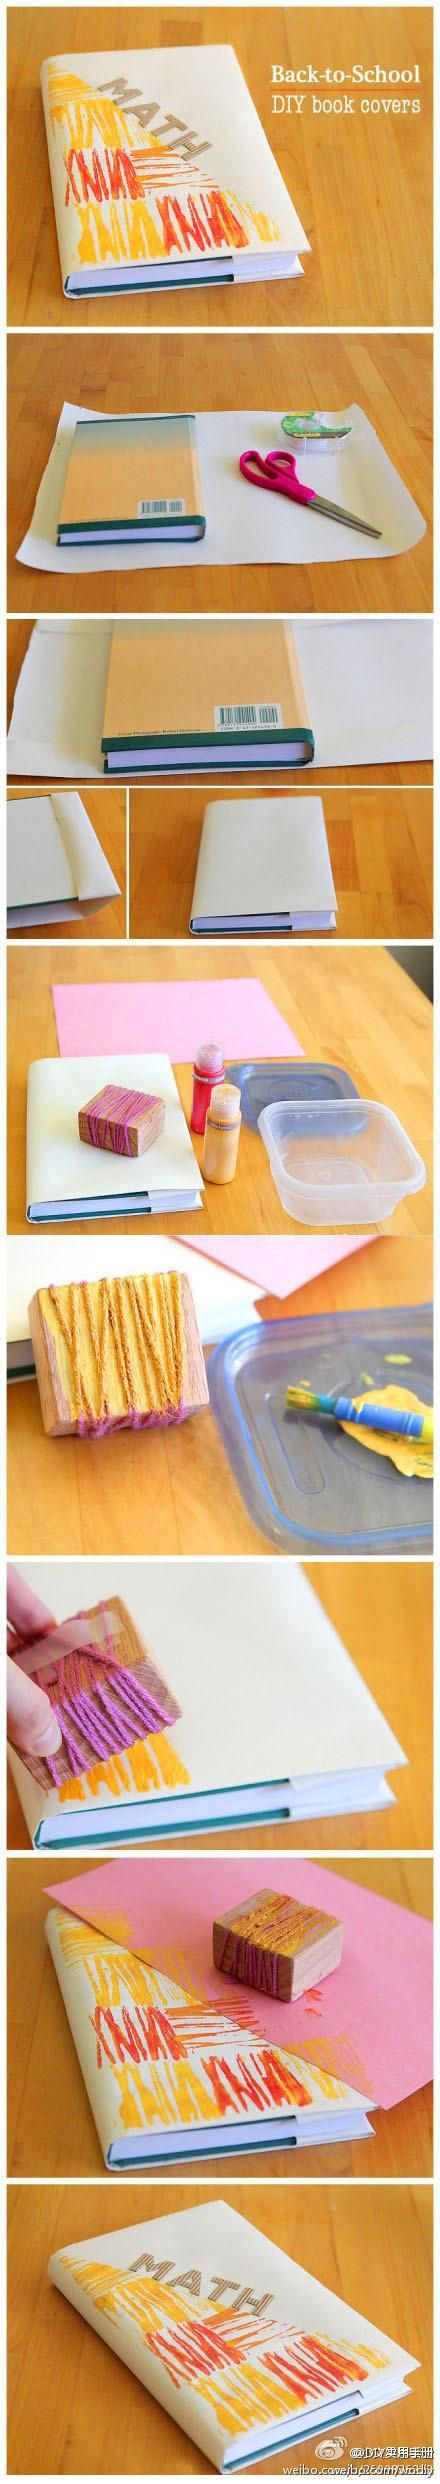 Math Book Cover Diy ~ Diy back to school book cover my favorite thing